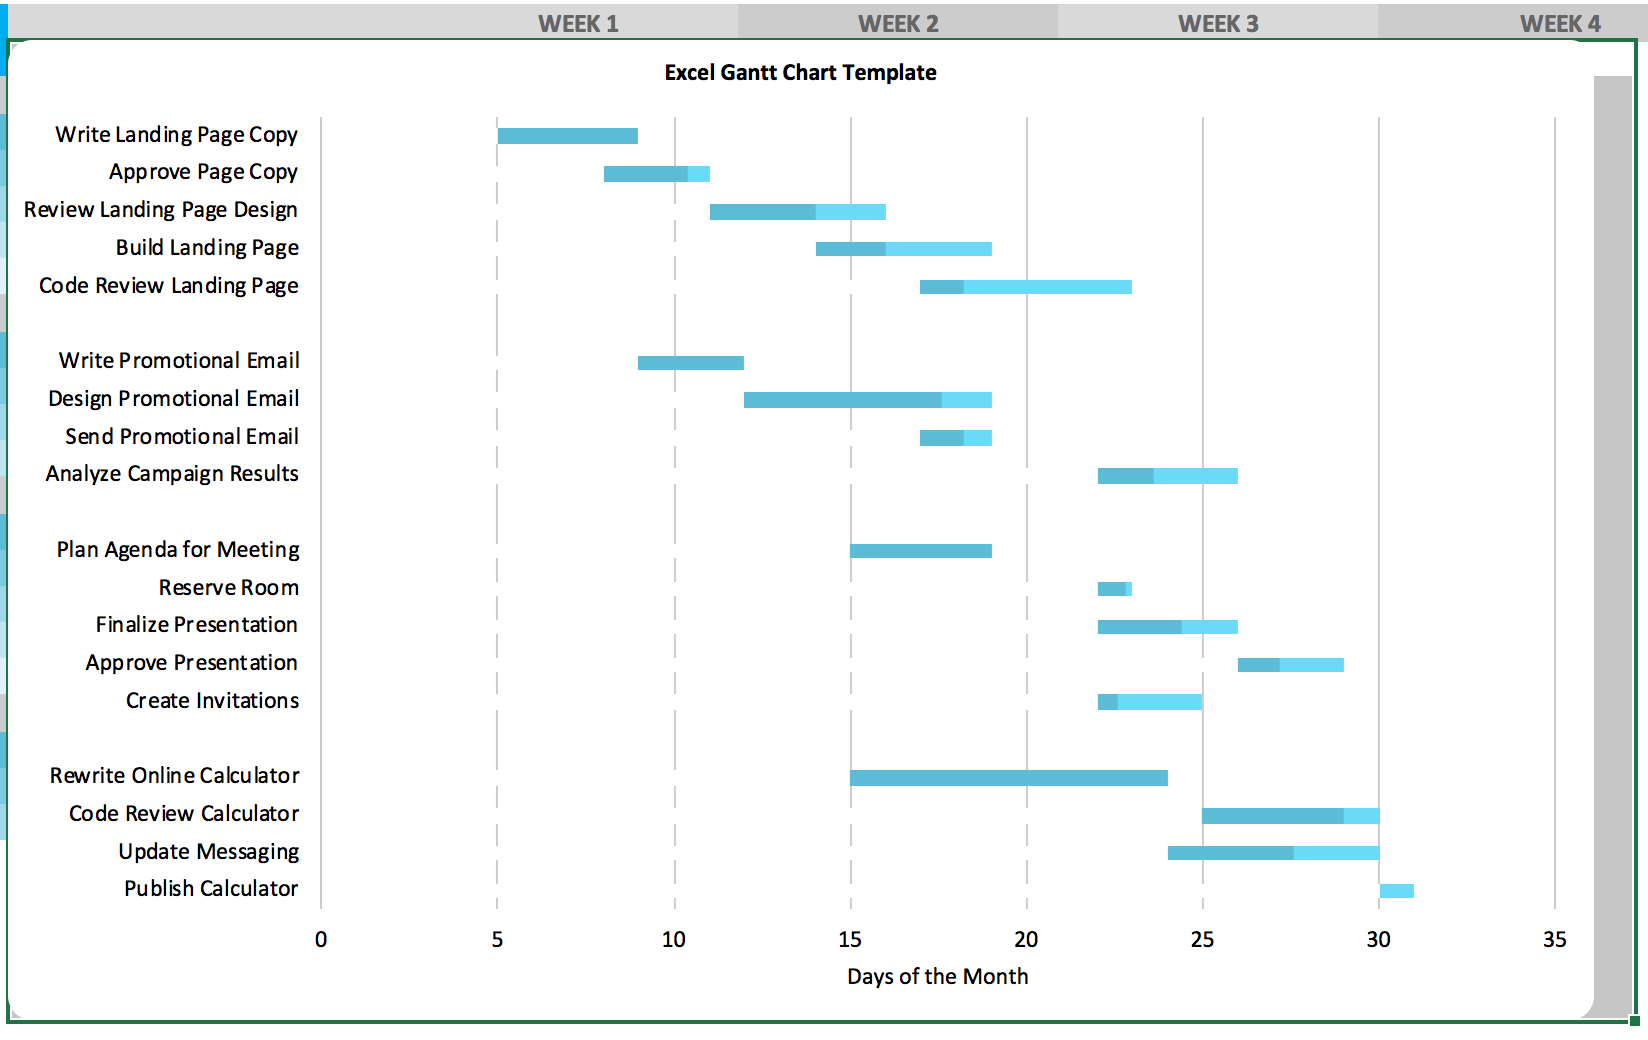 Blank Free Download Gantt Chart Template For Excel With Free Download Gantt Chart Template For Excel Download For Free